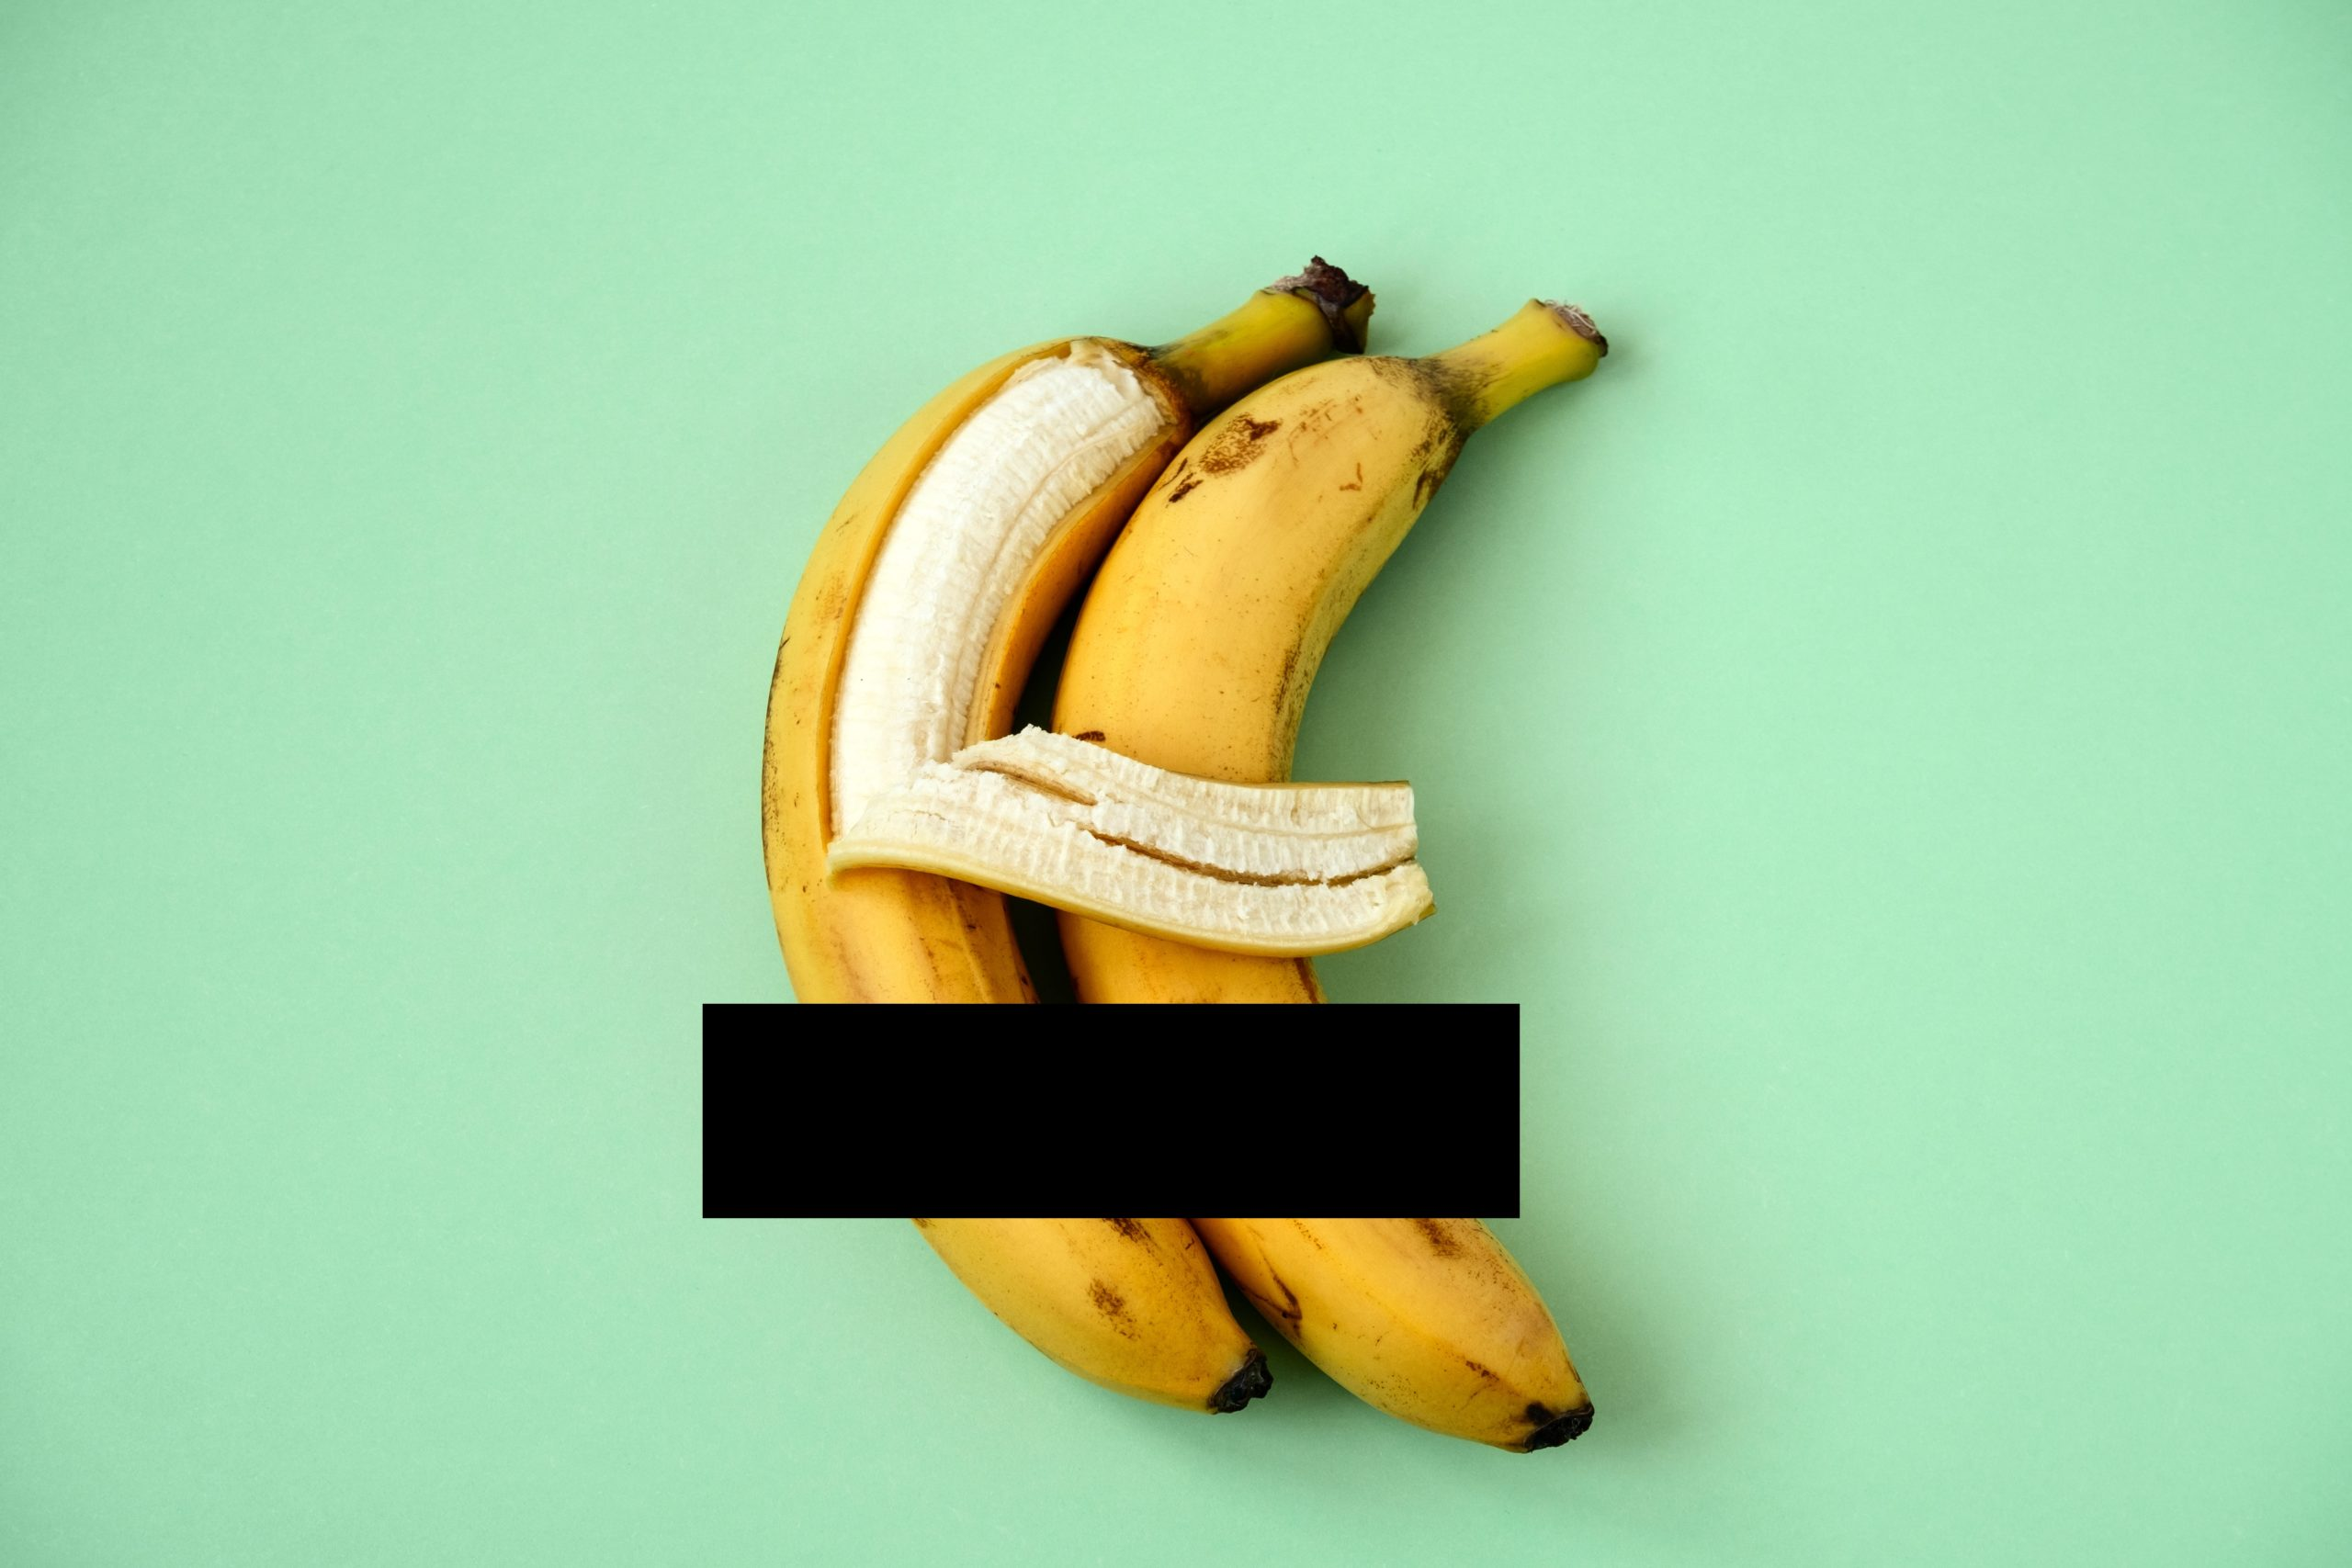 affection-art-banana-day-erotic-food-friendship-fruit-fun-funny-health-homosexual-hug-lgbt-lifestyle_t20_YEL2G1-scaled